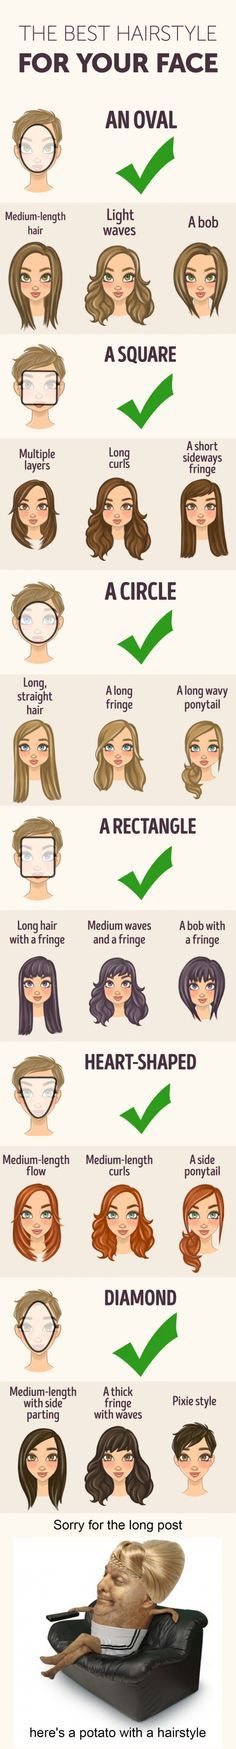 Comments comments Related posts: 14 Stunning DIY Hairstyles For Long Hair | Hairstyle Tutorials (4.3) 20 Easy Hairstyle Tutorials for Your Everyday Look (4.3)